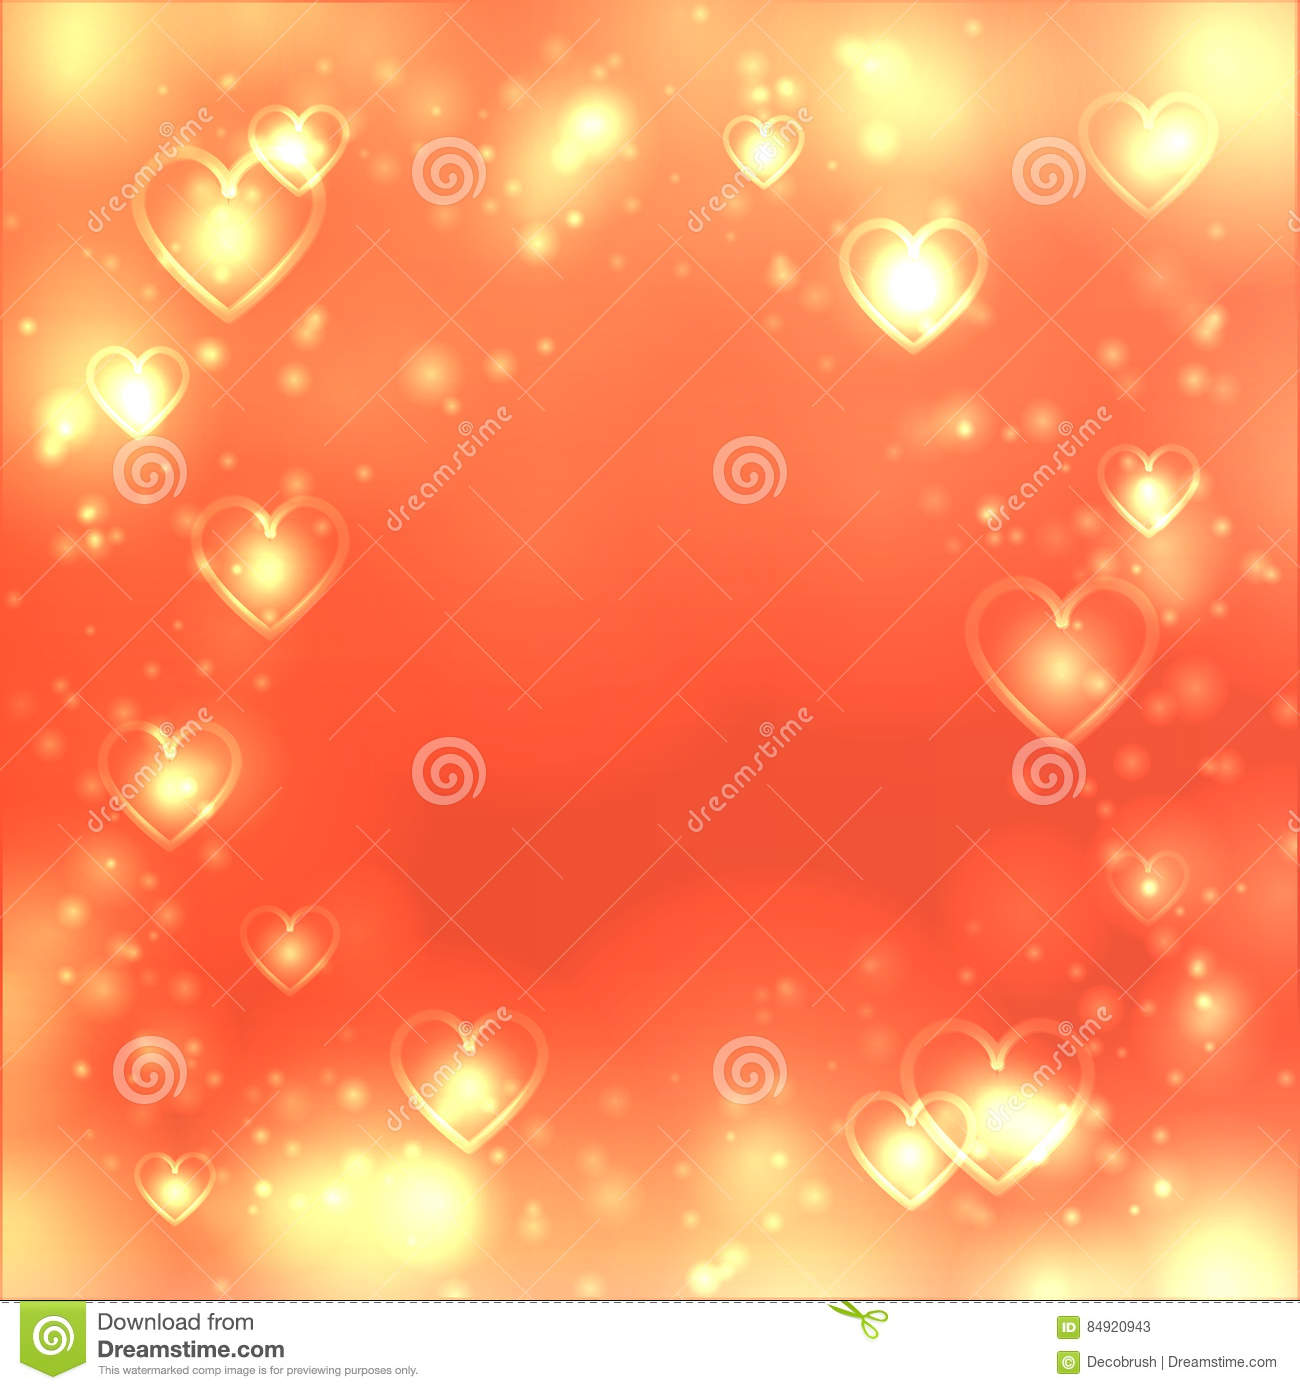 Valentines day heart background, love gold backdrop, space for text